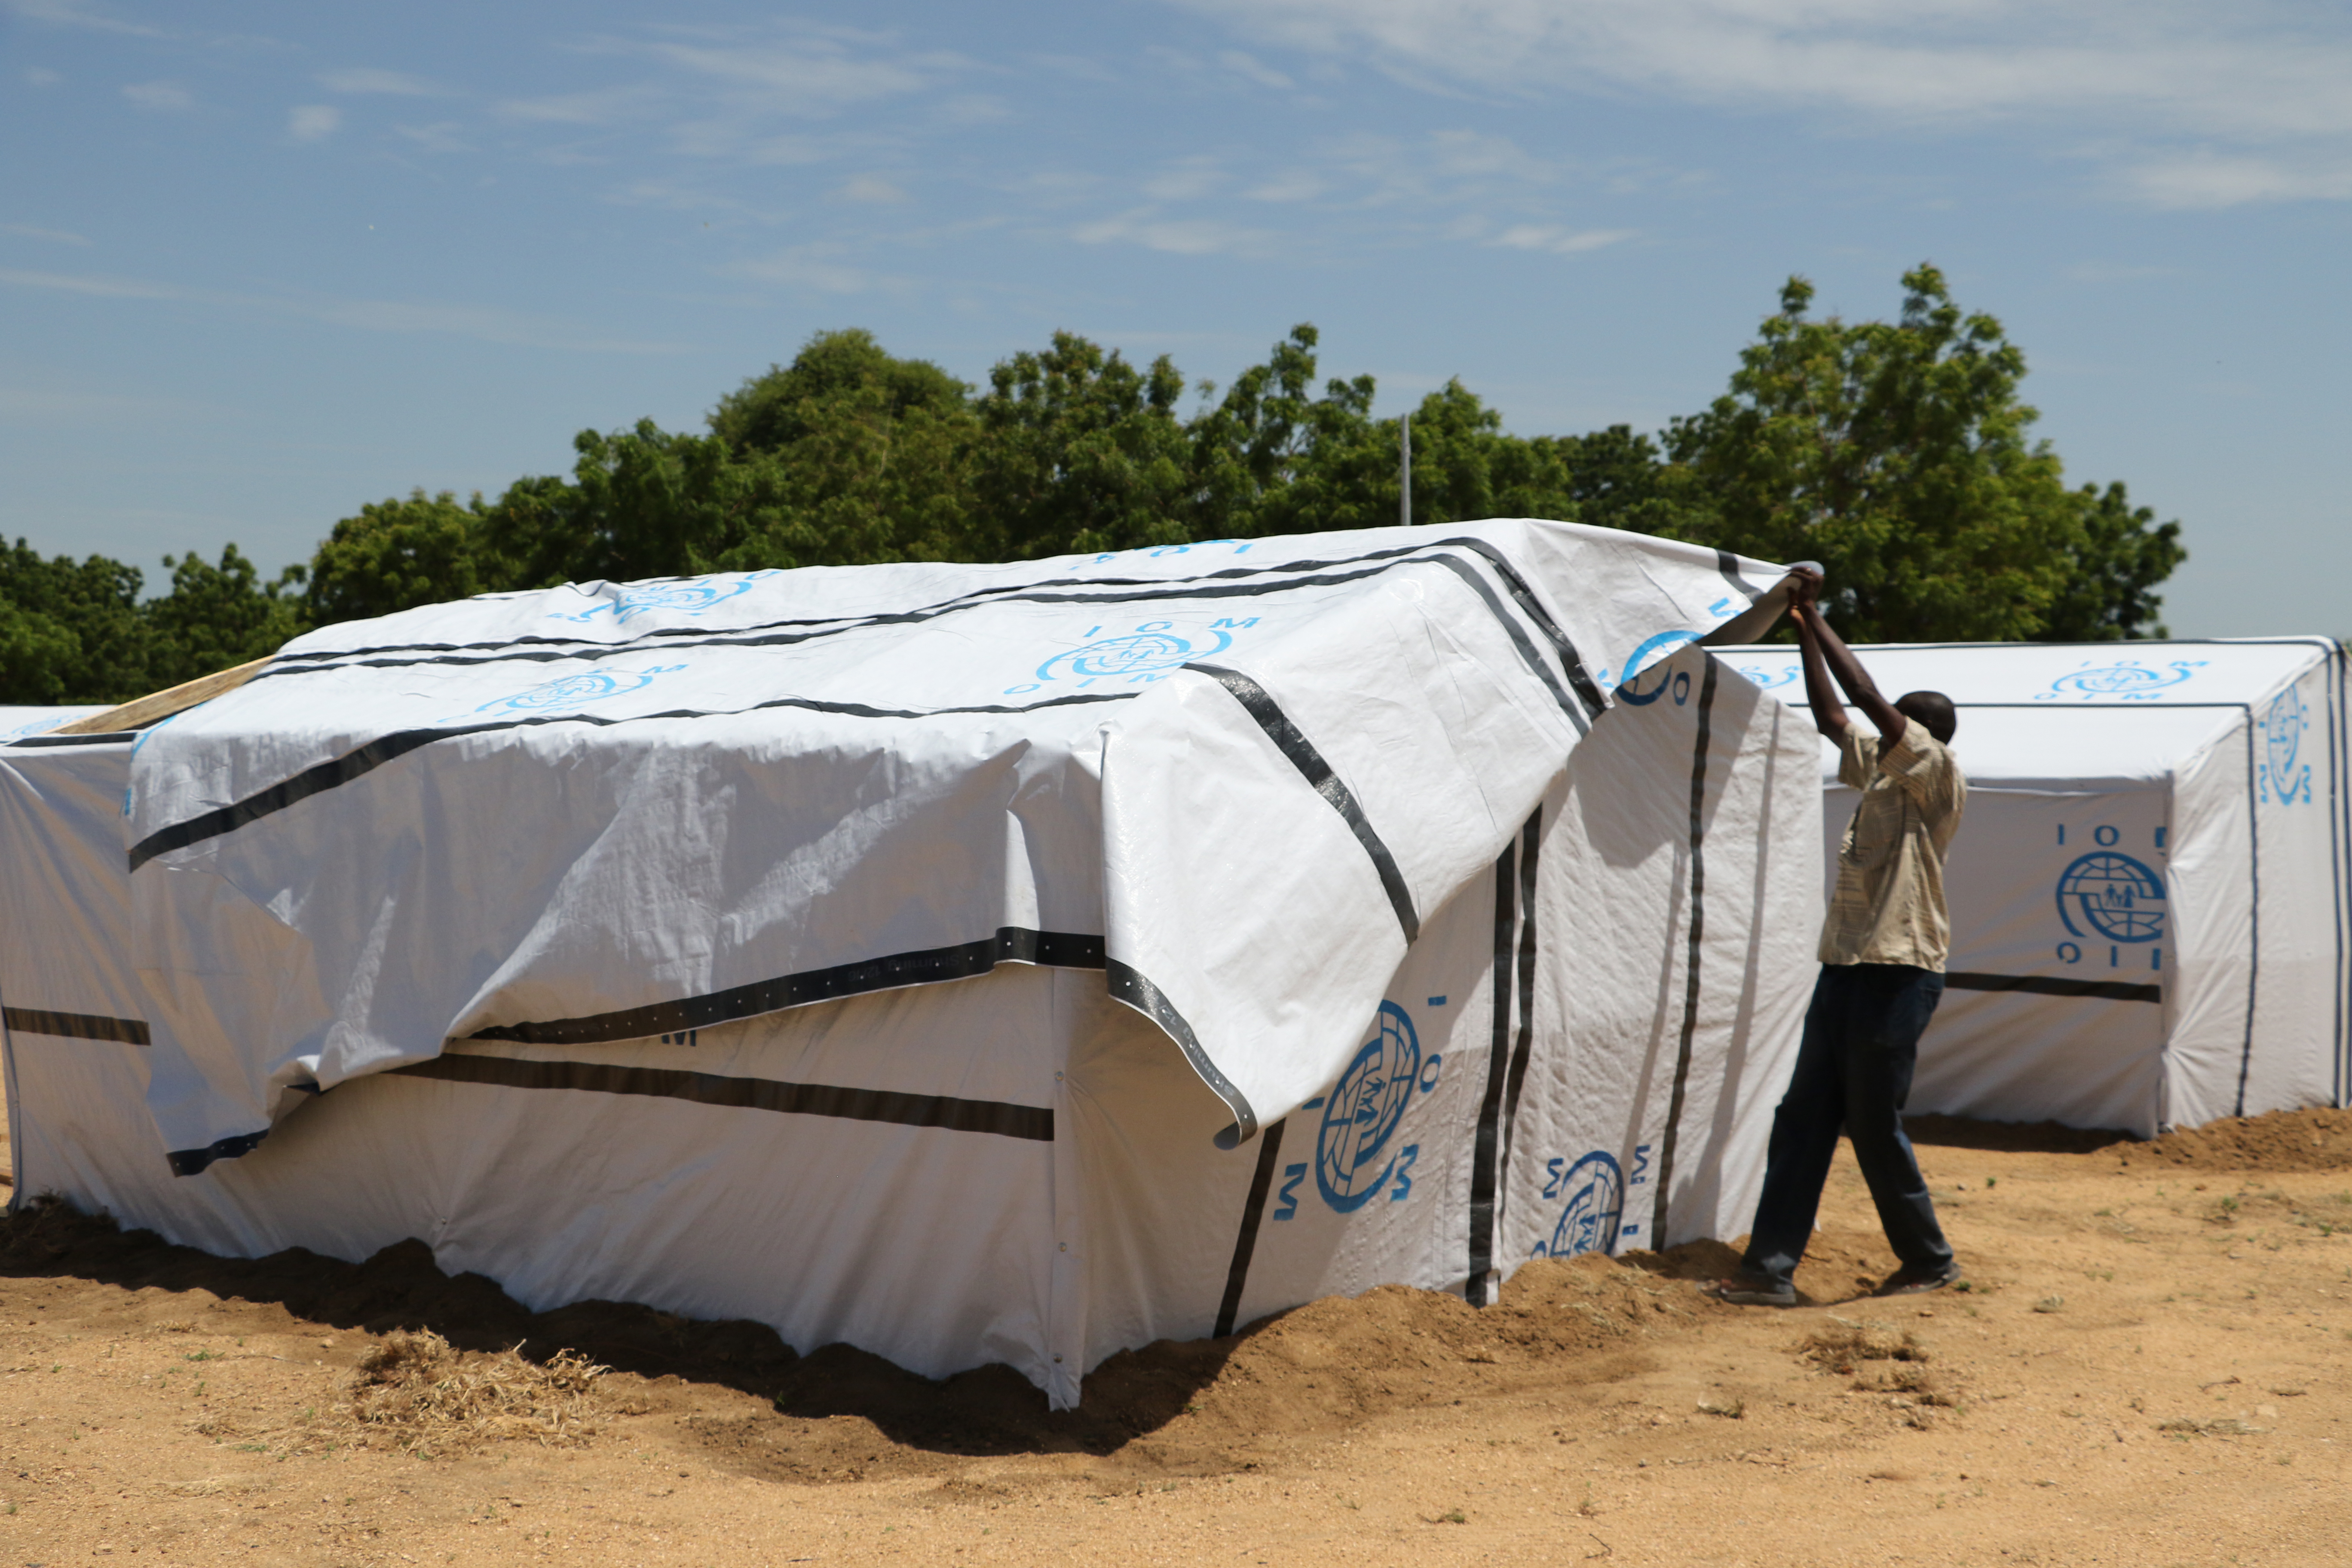 IOM Director General William Lacy Swing spent three days meeting with some of the internally displaced at camps and in communities in the hardest hit areas of Borno state, the epicentre of the conflict. IOM's emergency response is based in Maiduguri, the capital of Borno and the birthplace of Boko Haram.  Shelter under construction in Gwoza camp in Borno State.  Photo: Julia Burpee / UN Migration Agency (IOM) 2017